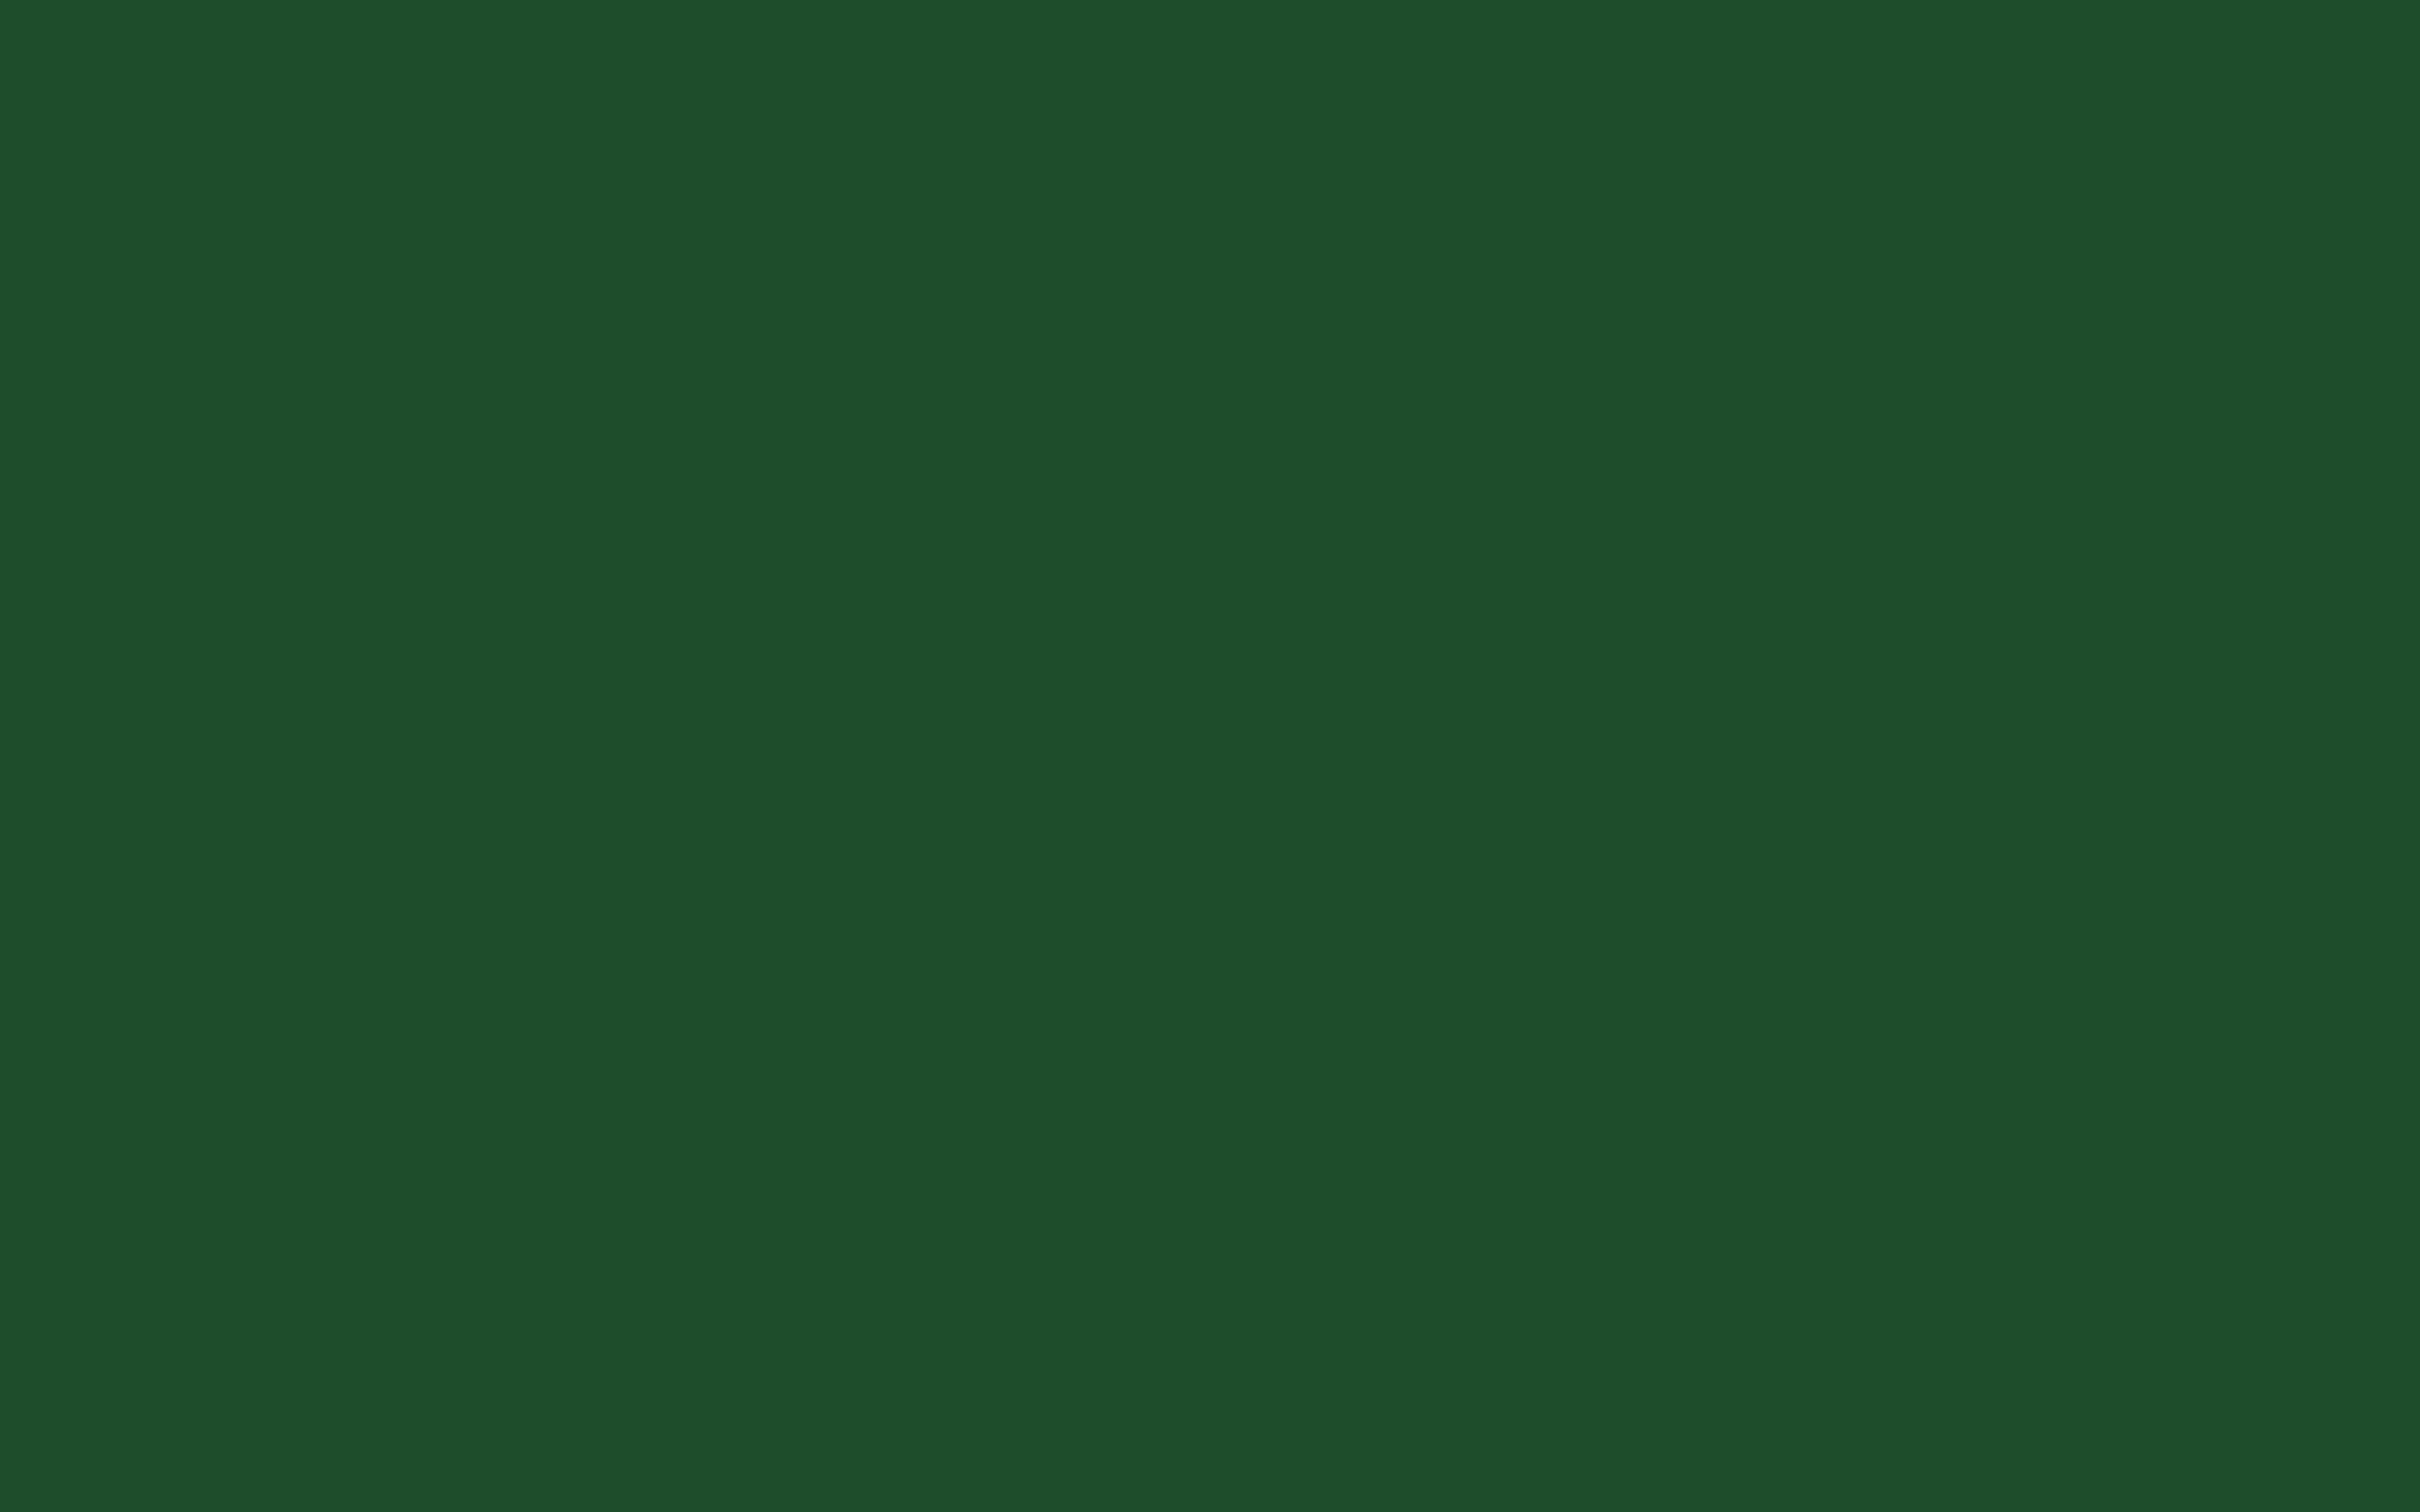 2880x1800 Cal Poly Green Solid Color Background 2880x1800